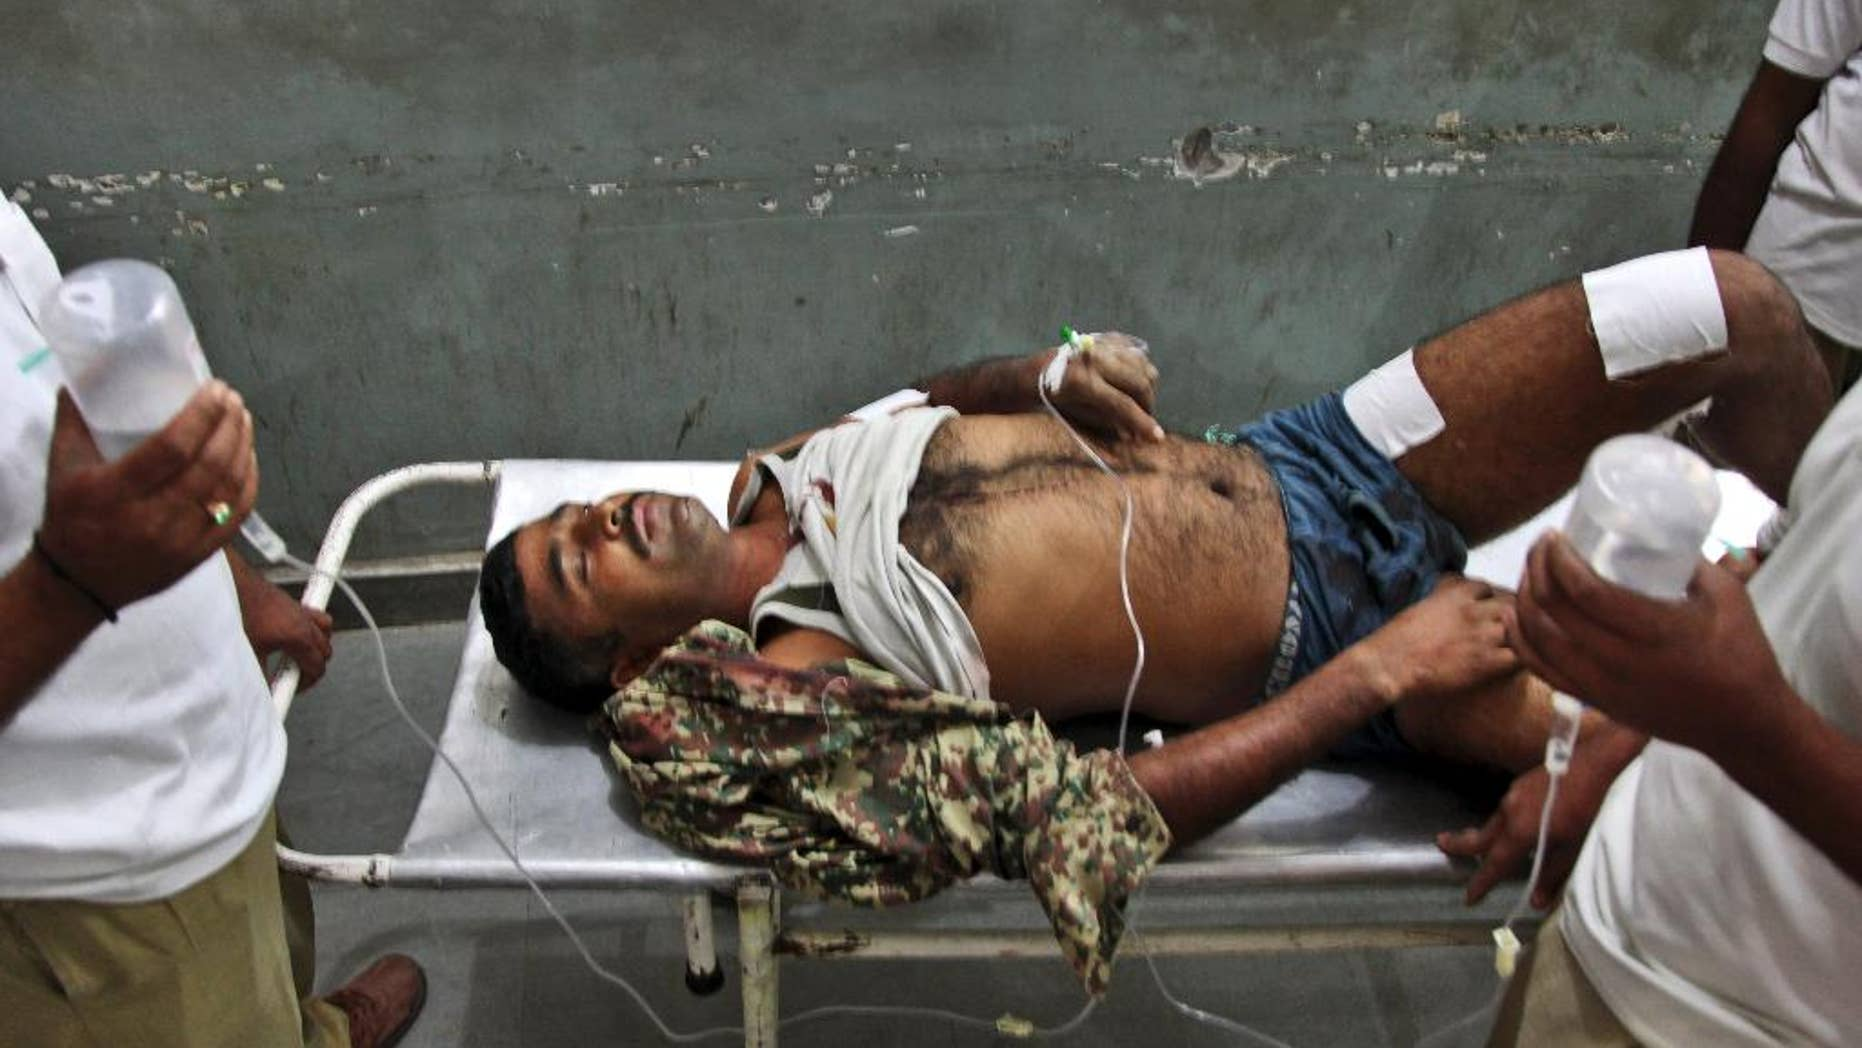 An Indian Border Security Force soldier is carried on a stretcher for treatment at the Government Medical College Hospital after being injured in attacks between India-Pakistan firing at the border area in Ranbir Singh Pura, in Jammu, India, Thursday, Oct. 9, 2014. Troops trading heavy fire between Pakistan and Indian-controlled Kashmir plunged civilians on both sides into grief with many killed and wounded this week, prompting many to question how two nations committed to a 2003 cease-fire could be targeting civilians while trading blame about who started shooting first. (AP Photo/Channi Anand)